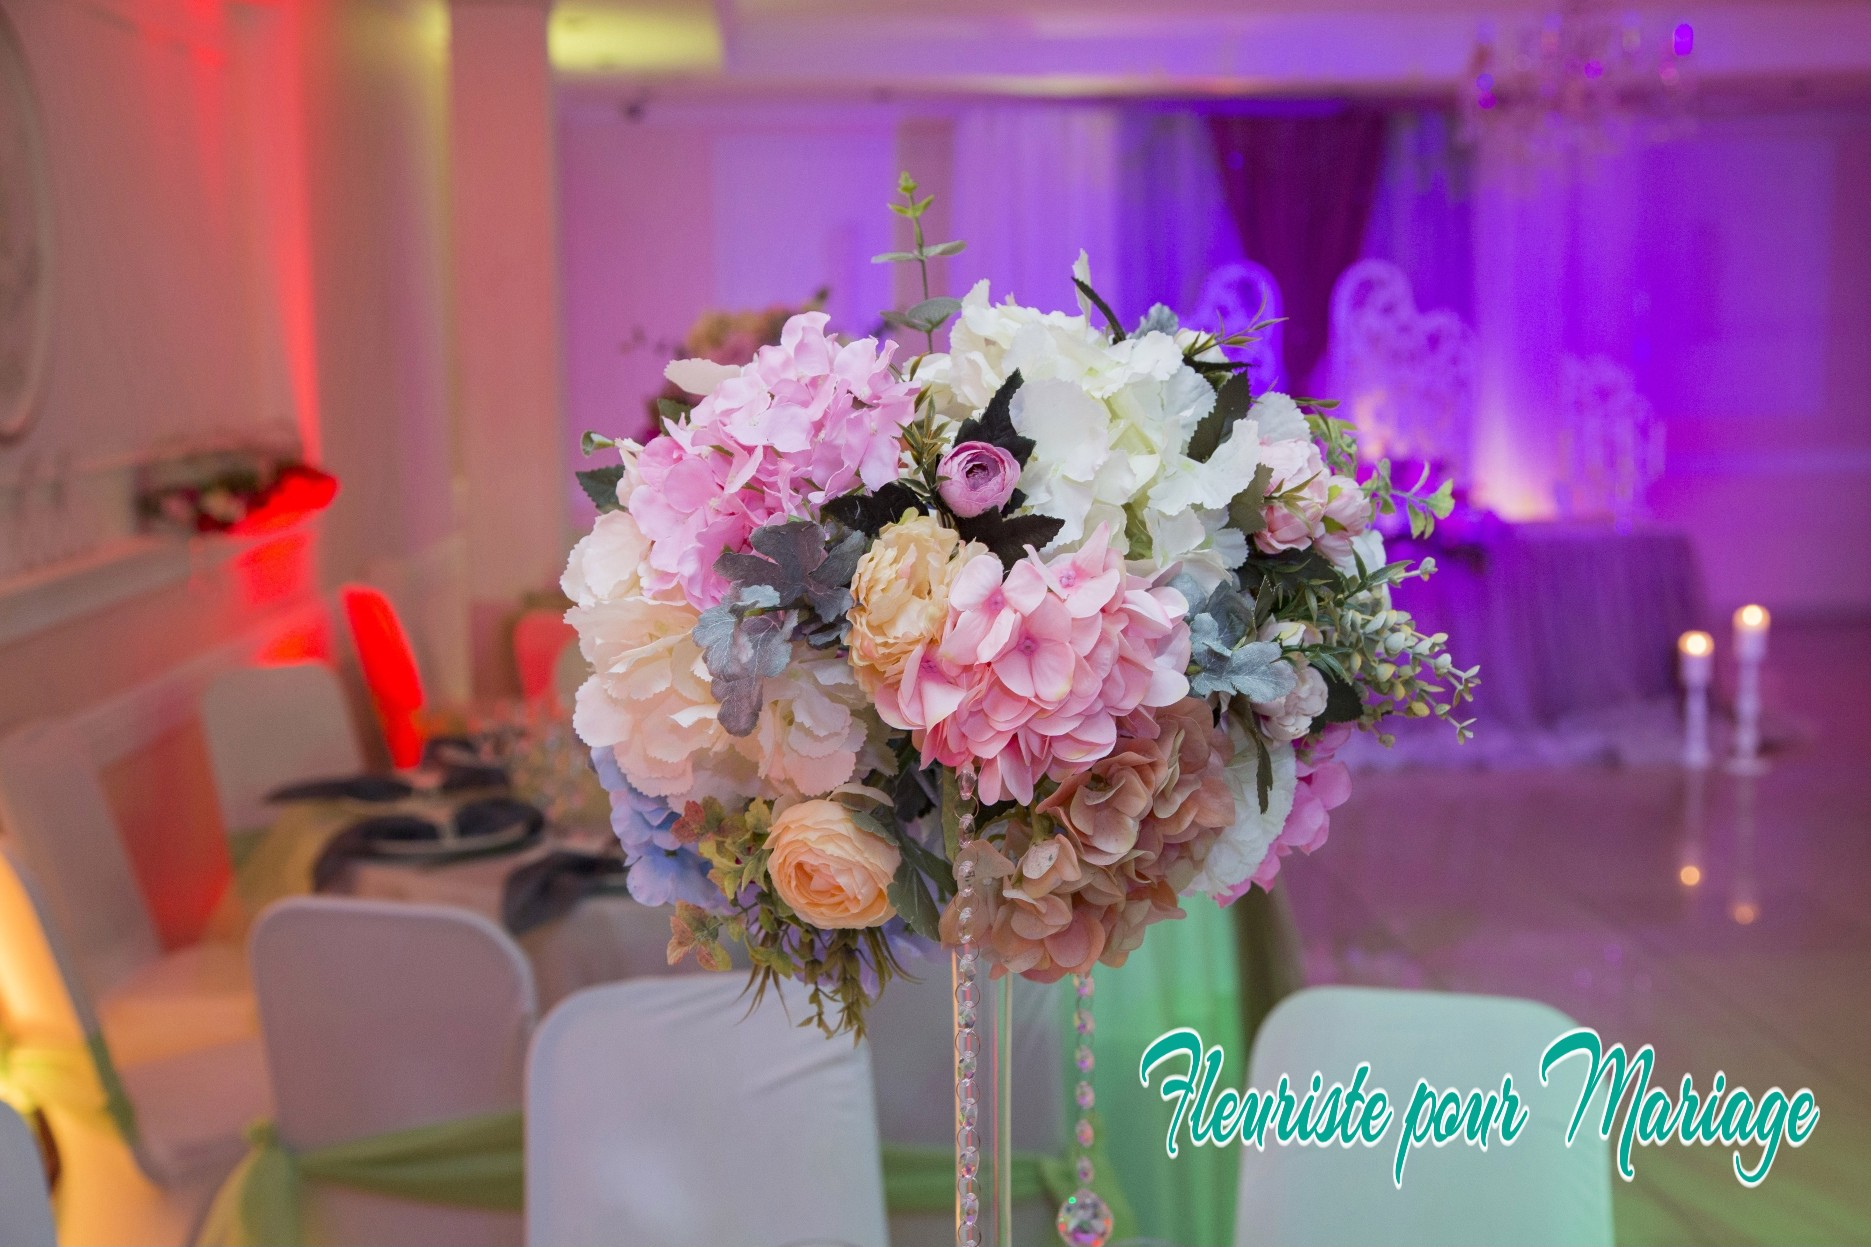 FLEURS POUR MARIAGE ST LAURENT DU VAR, ST LAURENT DU VAR, ST LAURENT DU VAR, ST LAURENT DU VAR, SOPHIA ANTIPOLIS, ST LAURENT DU VAR, ST LAURENT DU VAR, ROQUEFORT LES PINS, ST LAURENT DU VAR, VILLENEUVE LOUBET, ST LAURENT DU VAR, BIOT, LE CANNET, ST LAURENT DU VAR